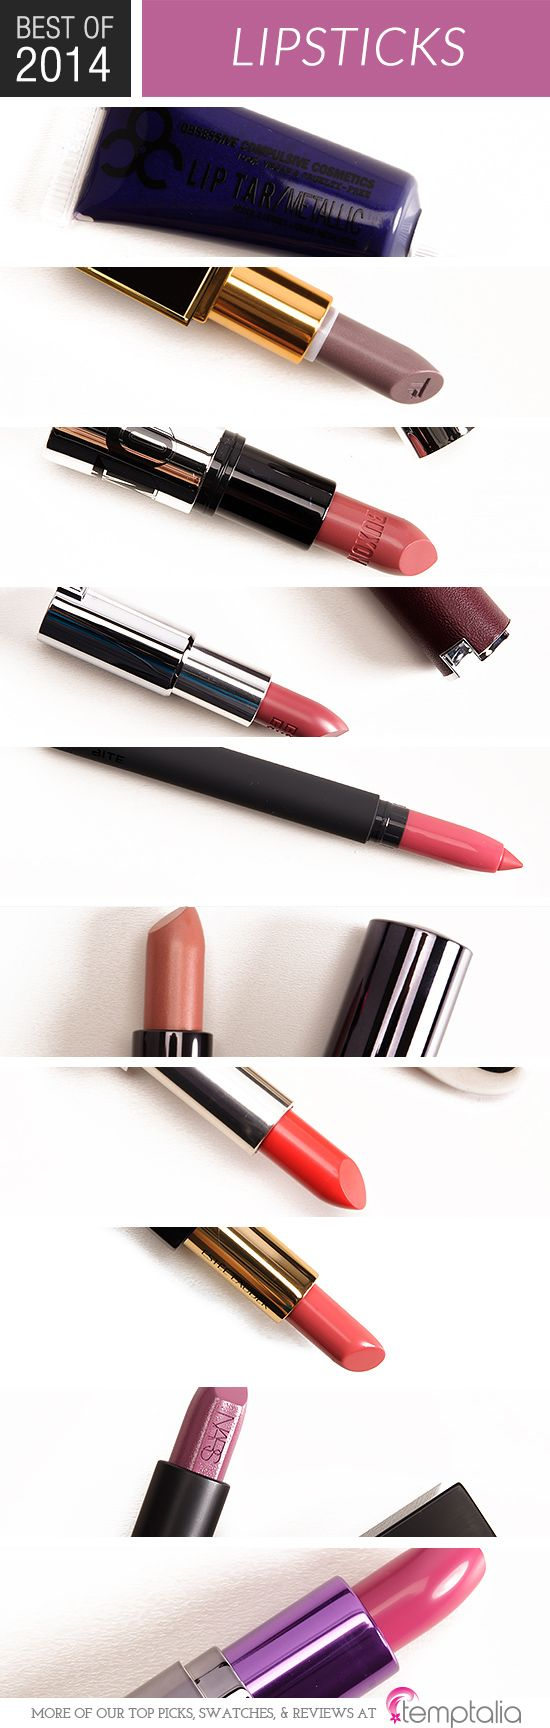 Lipsticks 2014 Editor's Favorites Best lipsticks, Top